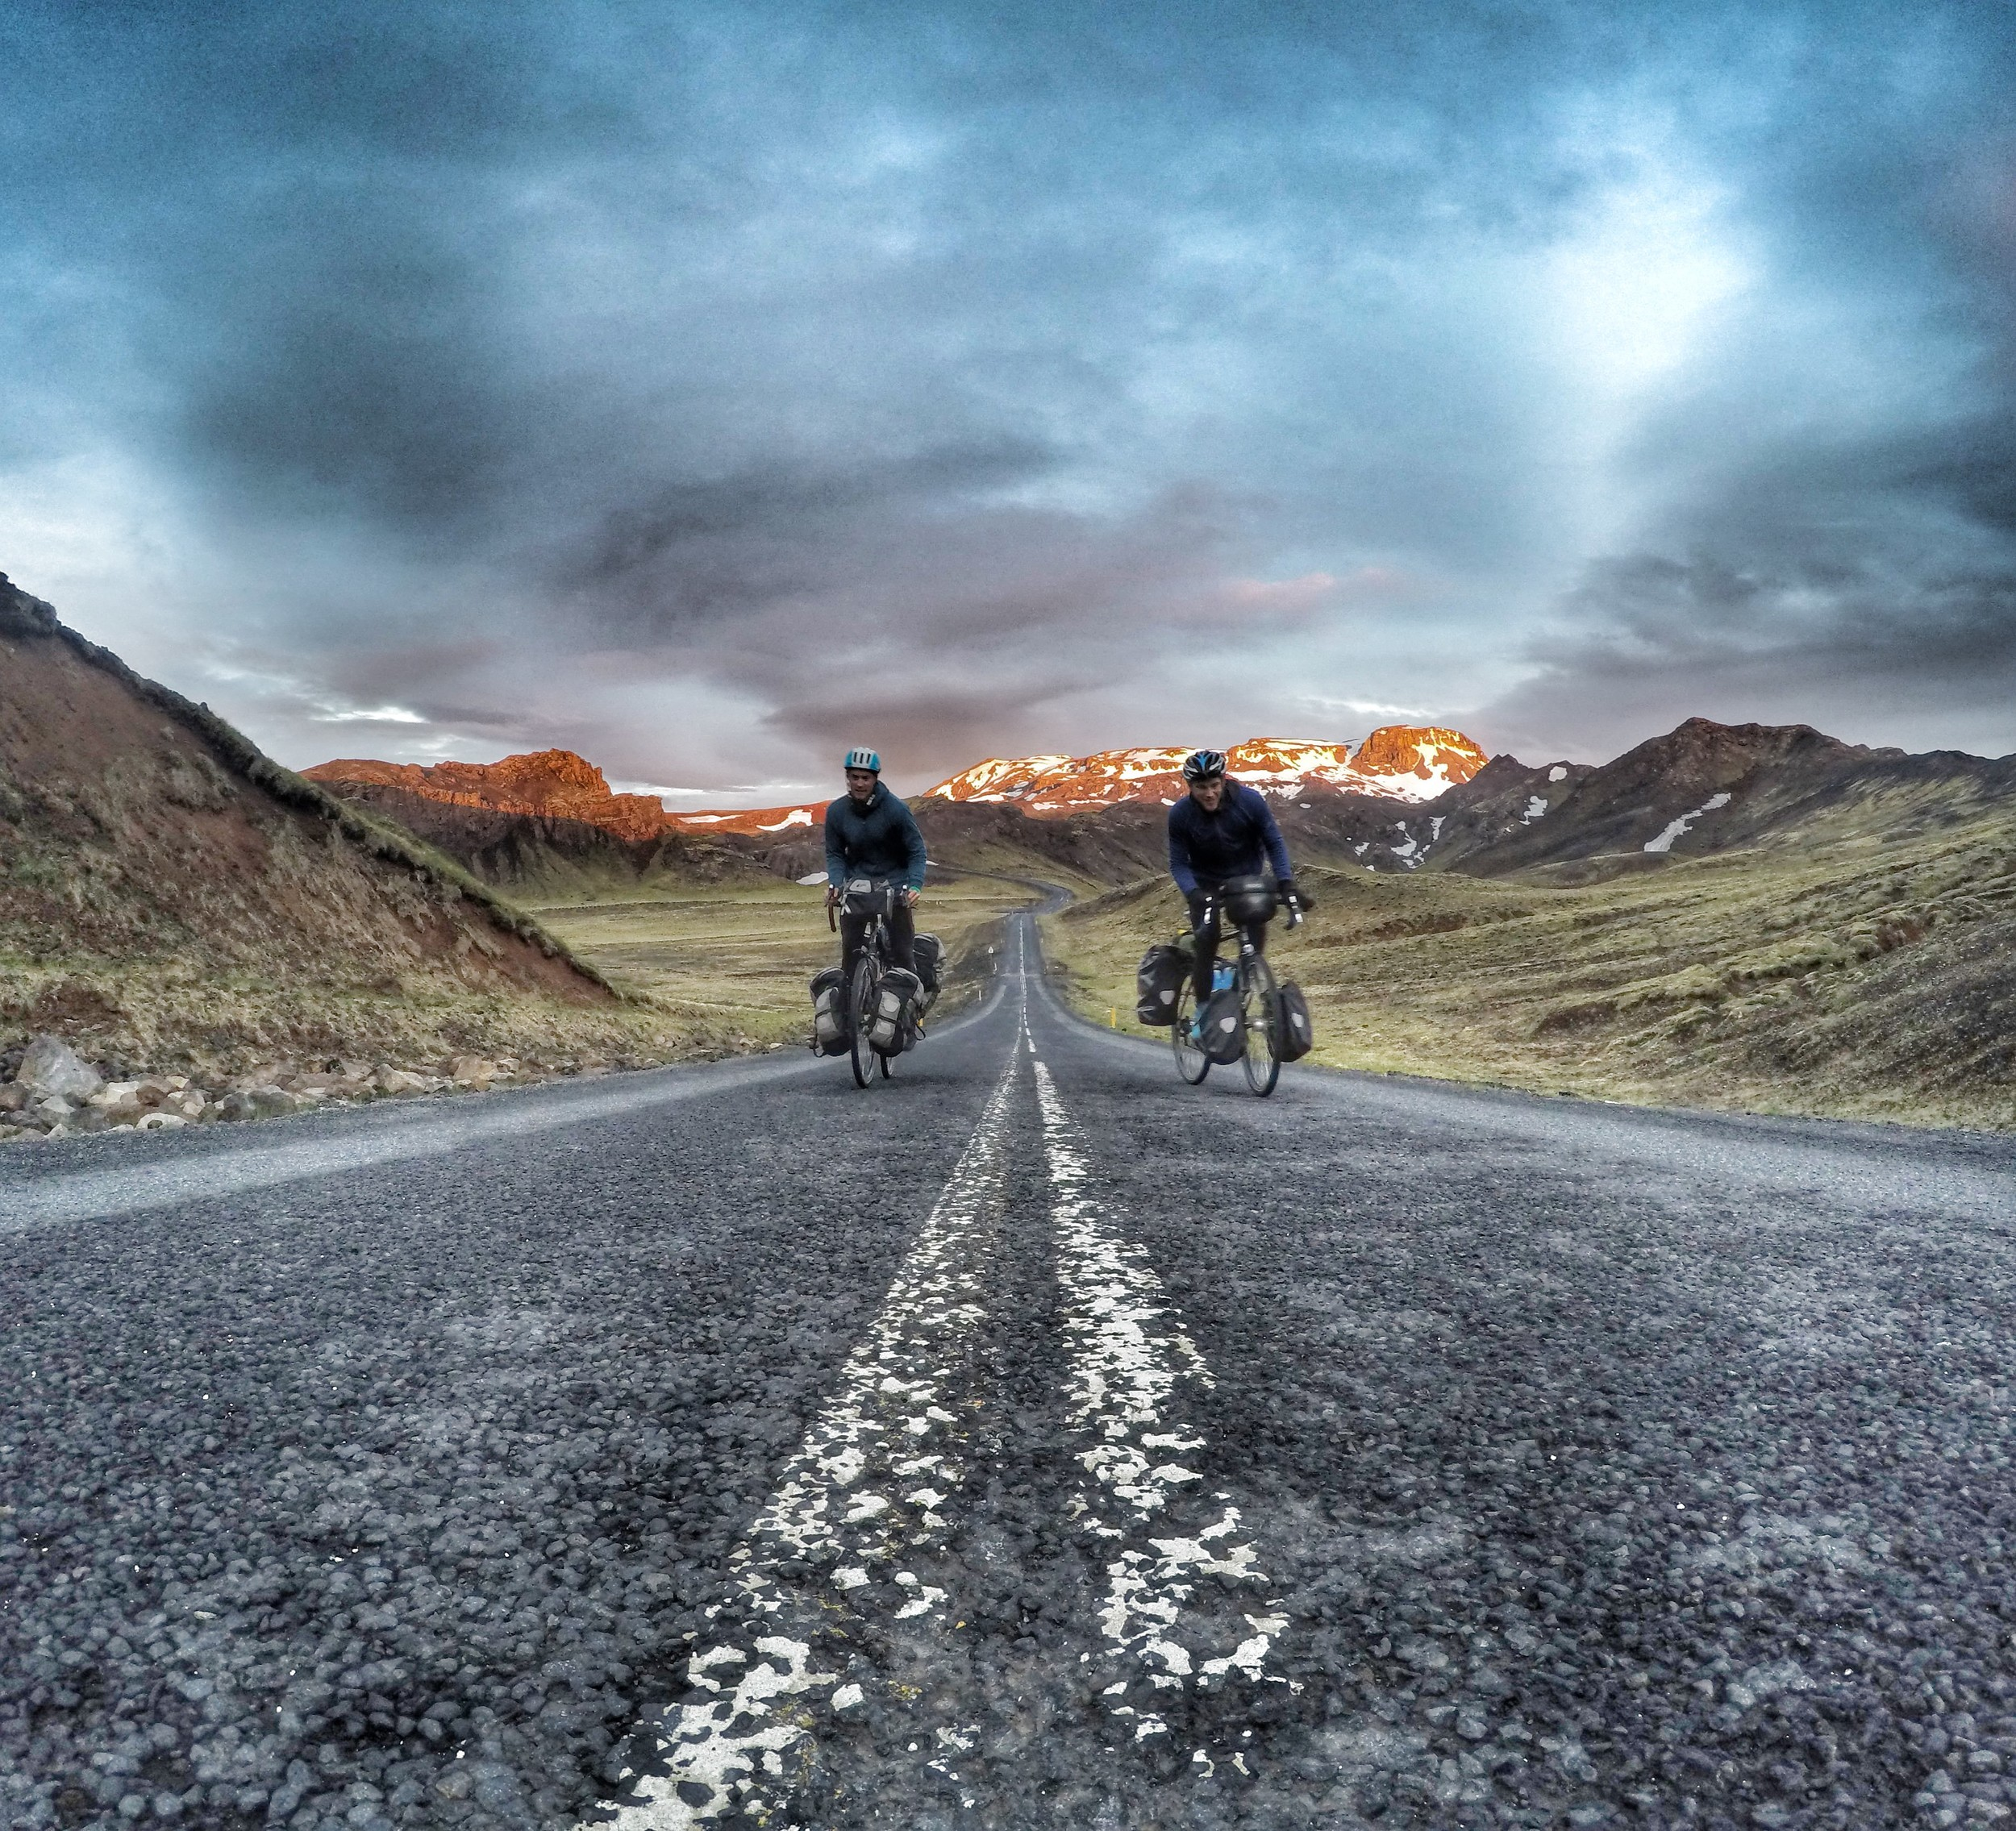 Some numbers from my circumnavigation of Iceland with my cousin:    Total distance: 1760.61km   Total time: 92h 32m 13s   Average speed: 19.03kph   Daily average: 110.06km   Daily average time: 5h 47m 1s   Number of days: 16   Jars of Nutella: > ½ dozen